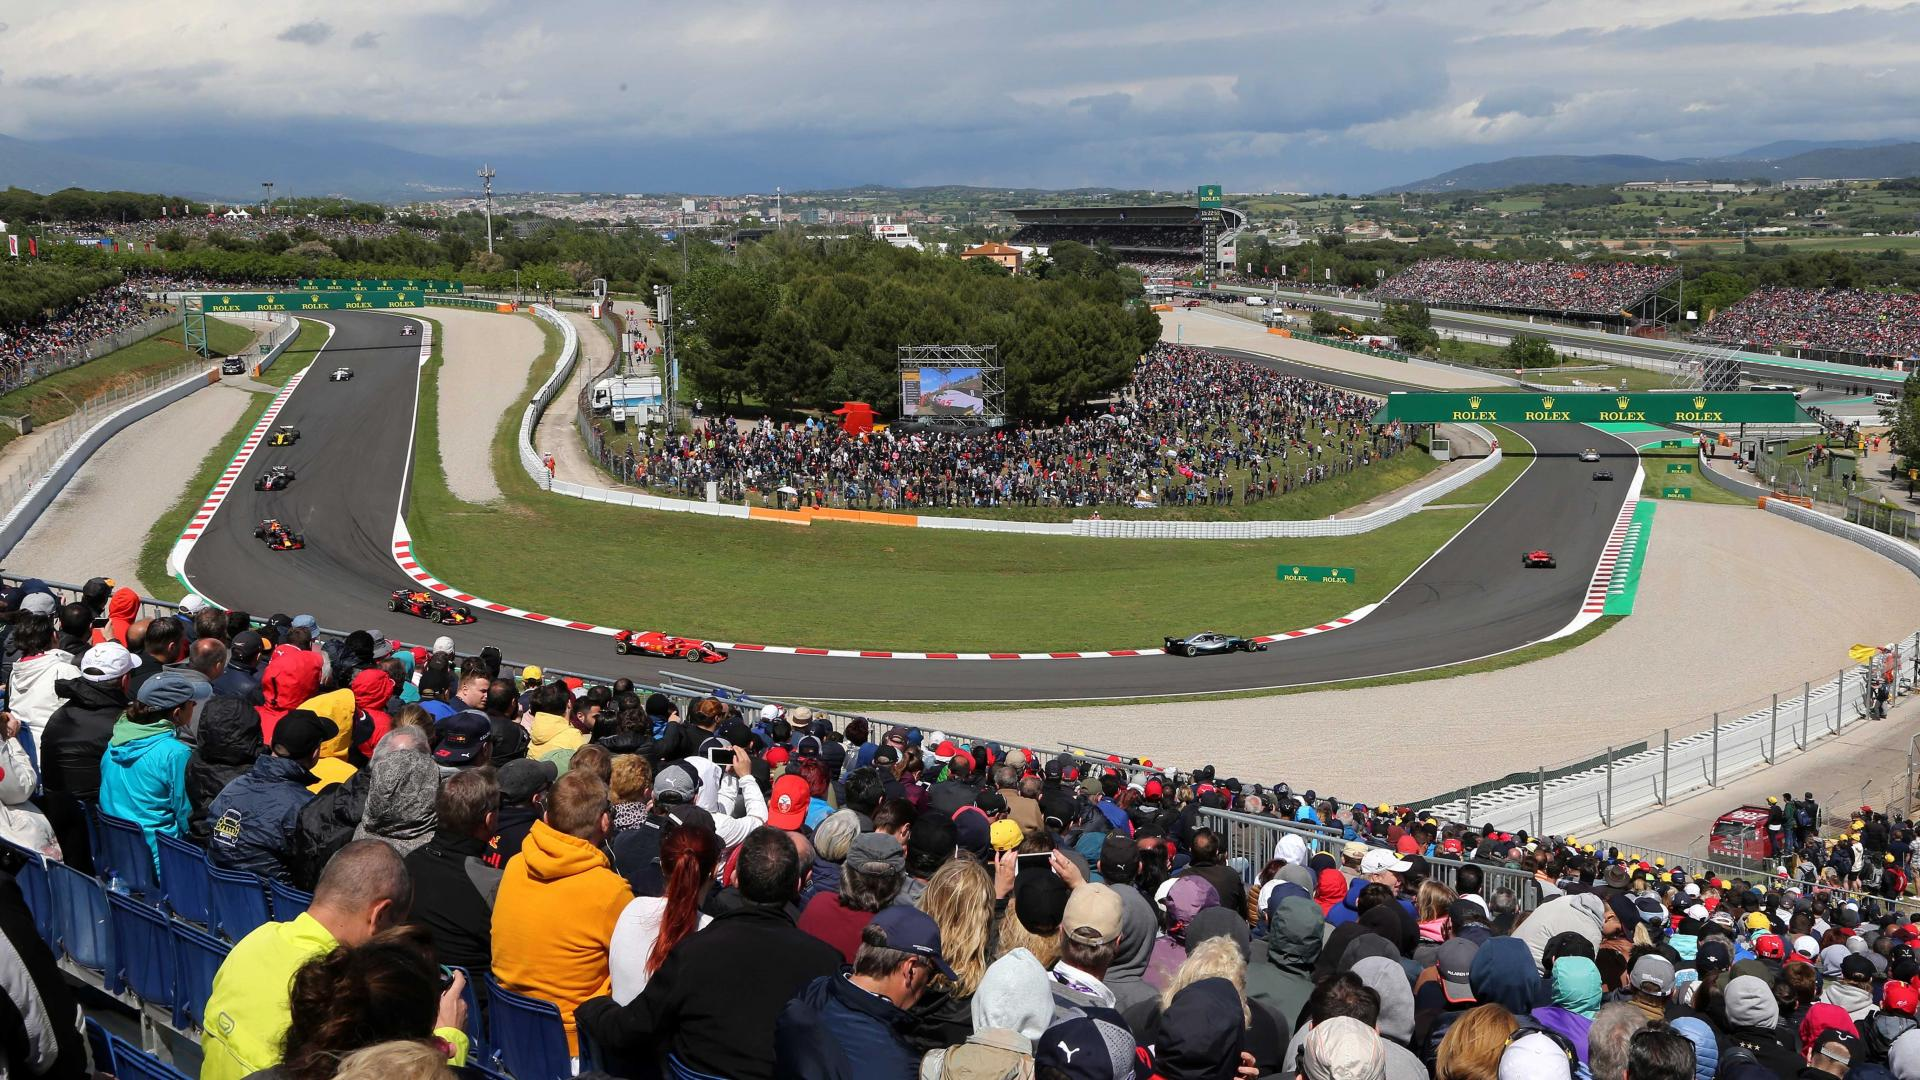 4, 5 of 6 dagen naar de Formule 1 Grand Prix 2019 in Barcelona, incl. GP tickets o.b.v. halfpension!